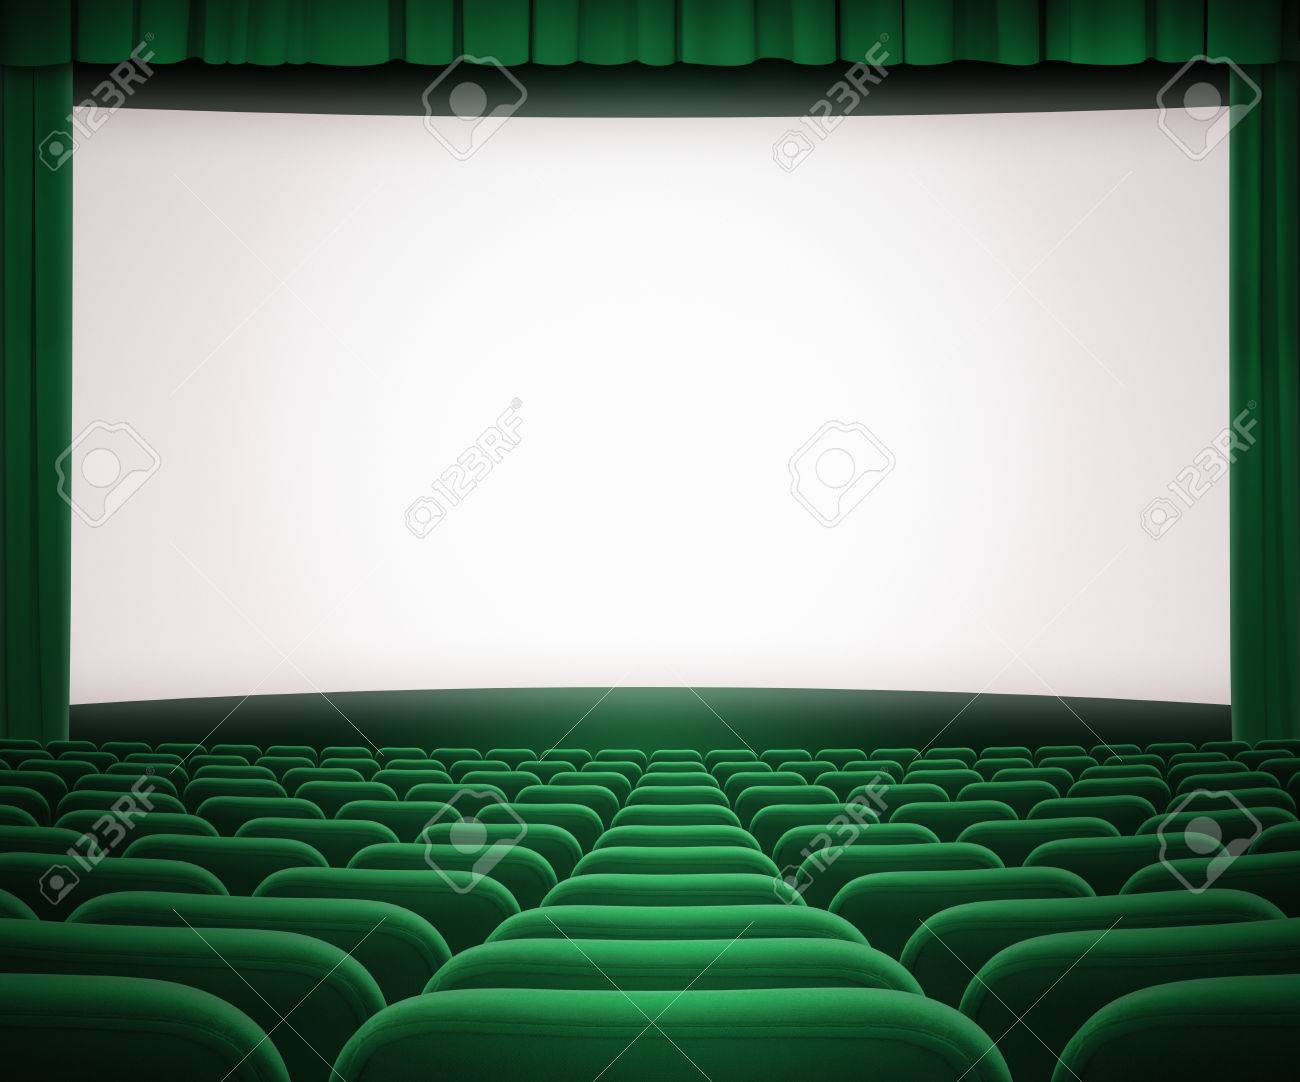 Green curtains crossword - Green Curtain Cinema Screen With Open Green Curtain And Seats